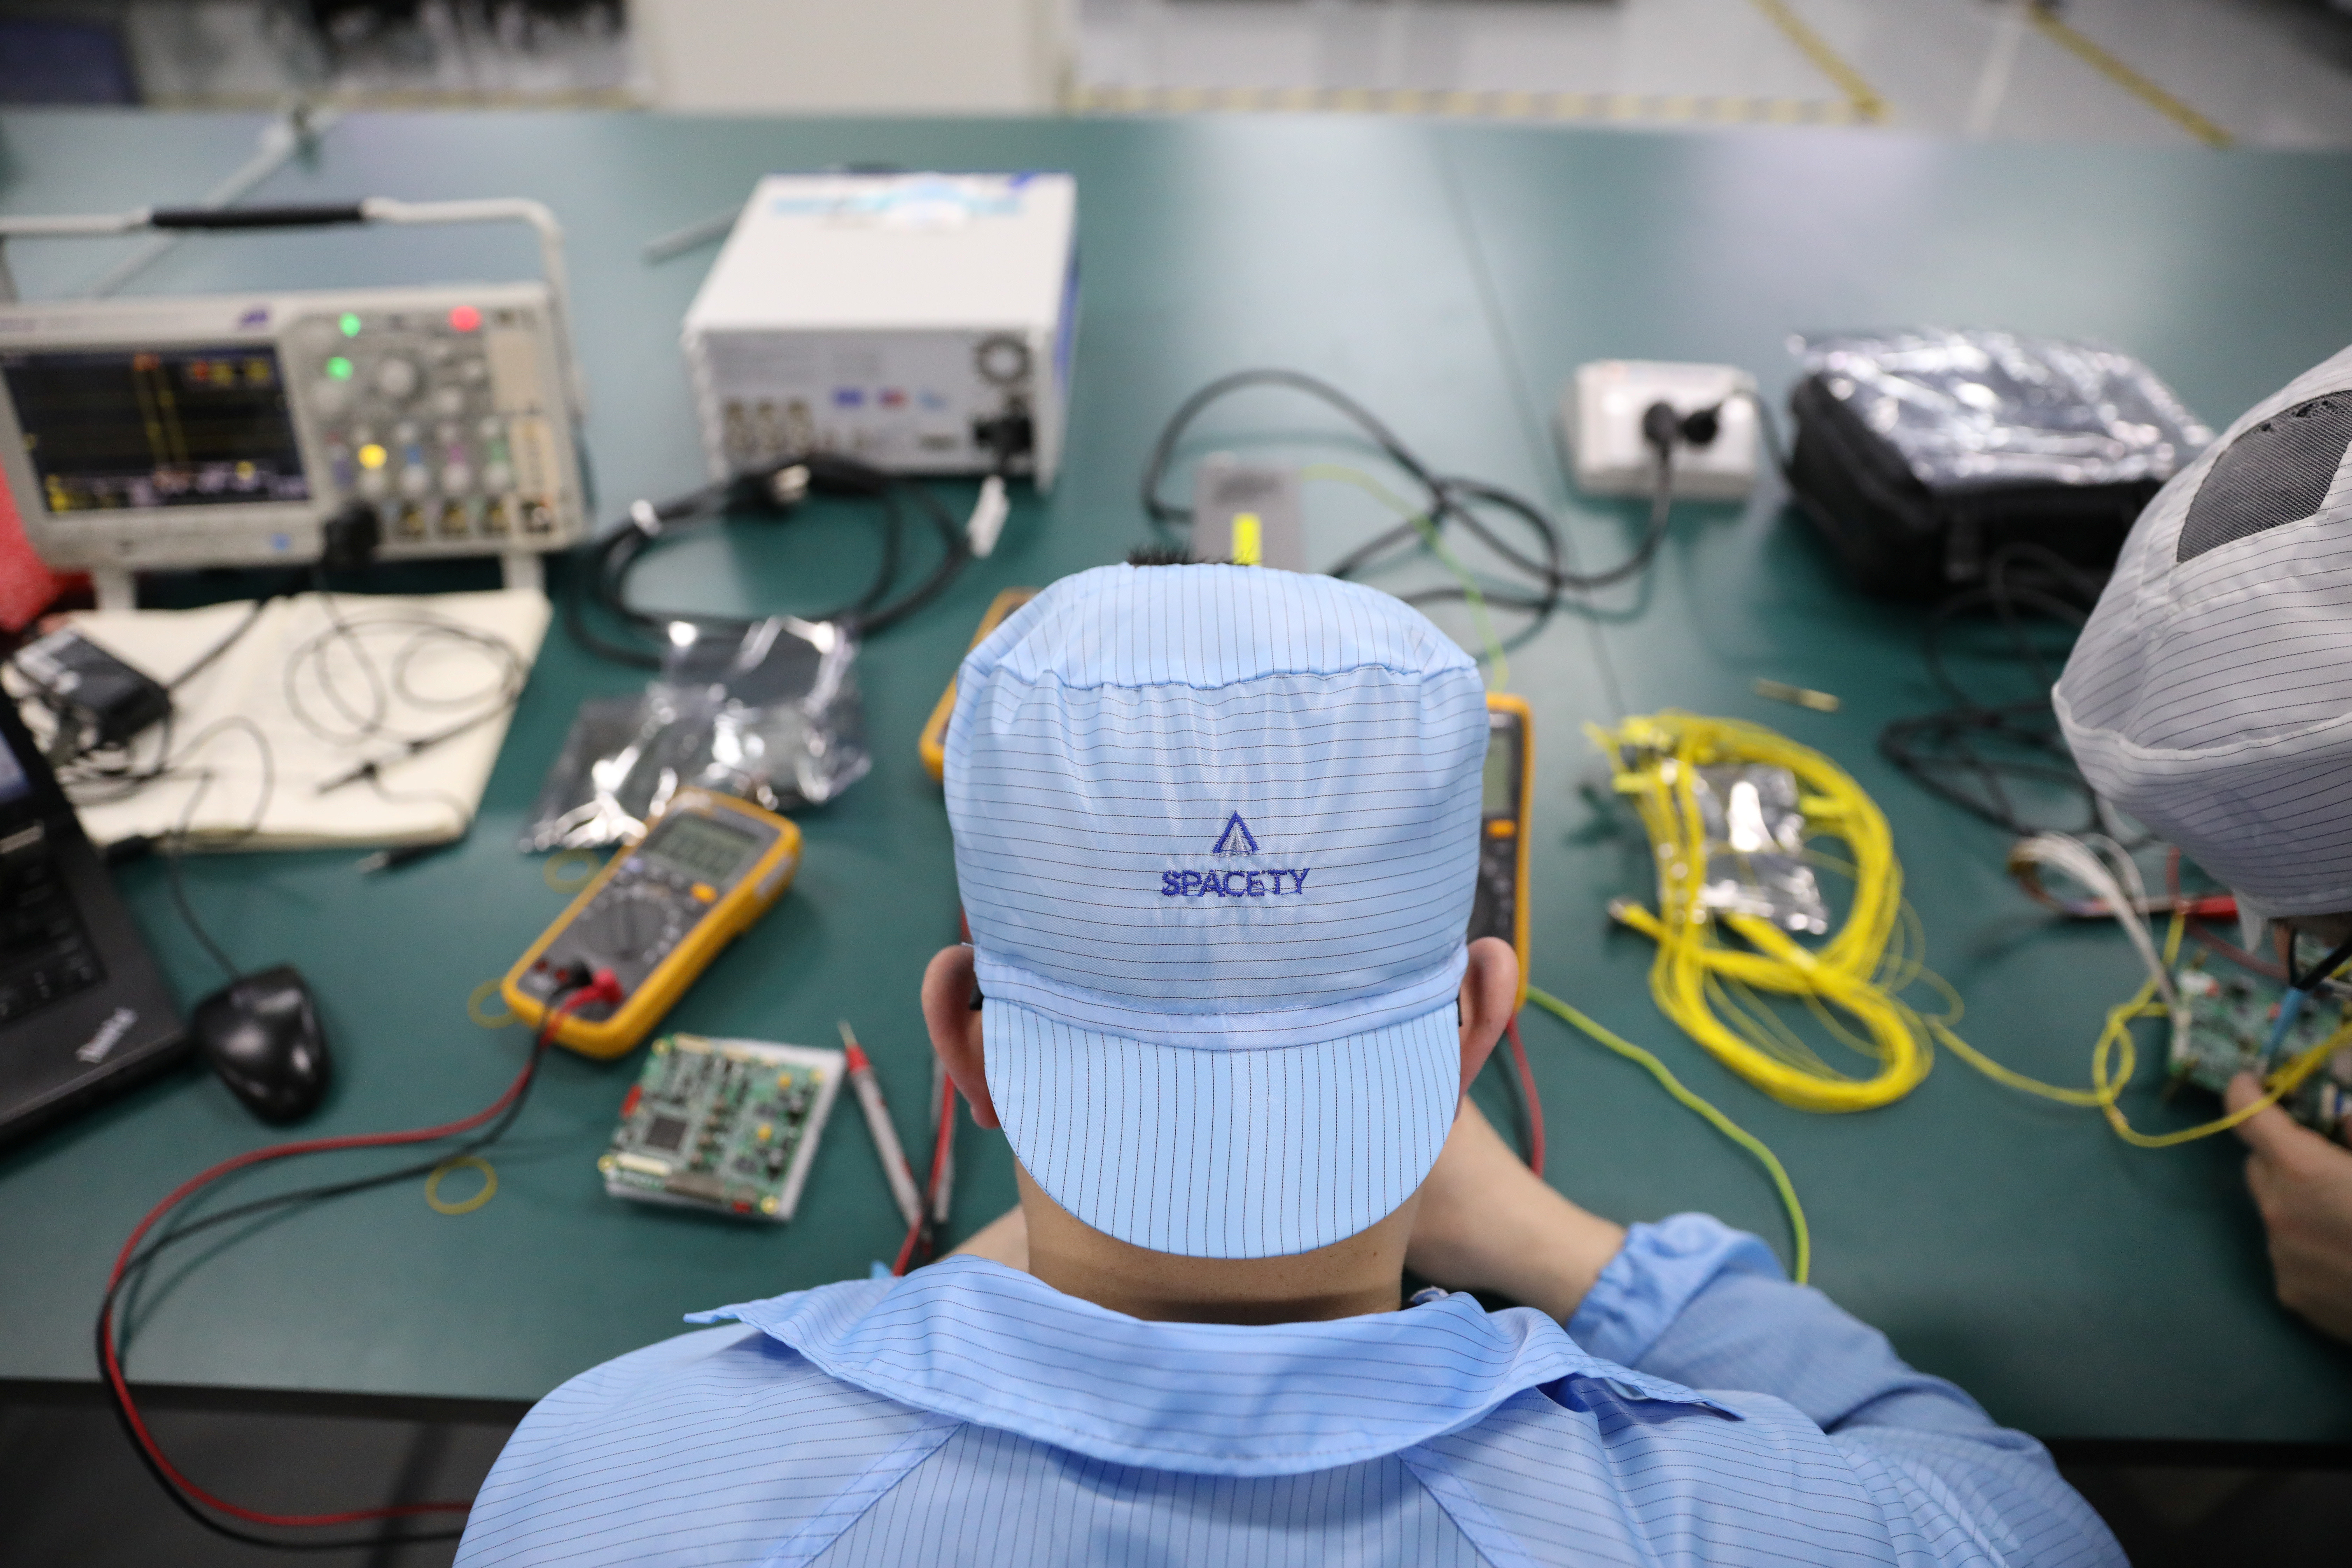 An engineer tests an electronic panel of a satellite at a lab of Spacety in Changsha, Hunan province, China, April 22, 2019. REUTERS/Aly Song - RC1E281AB0F0